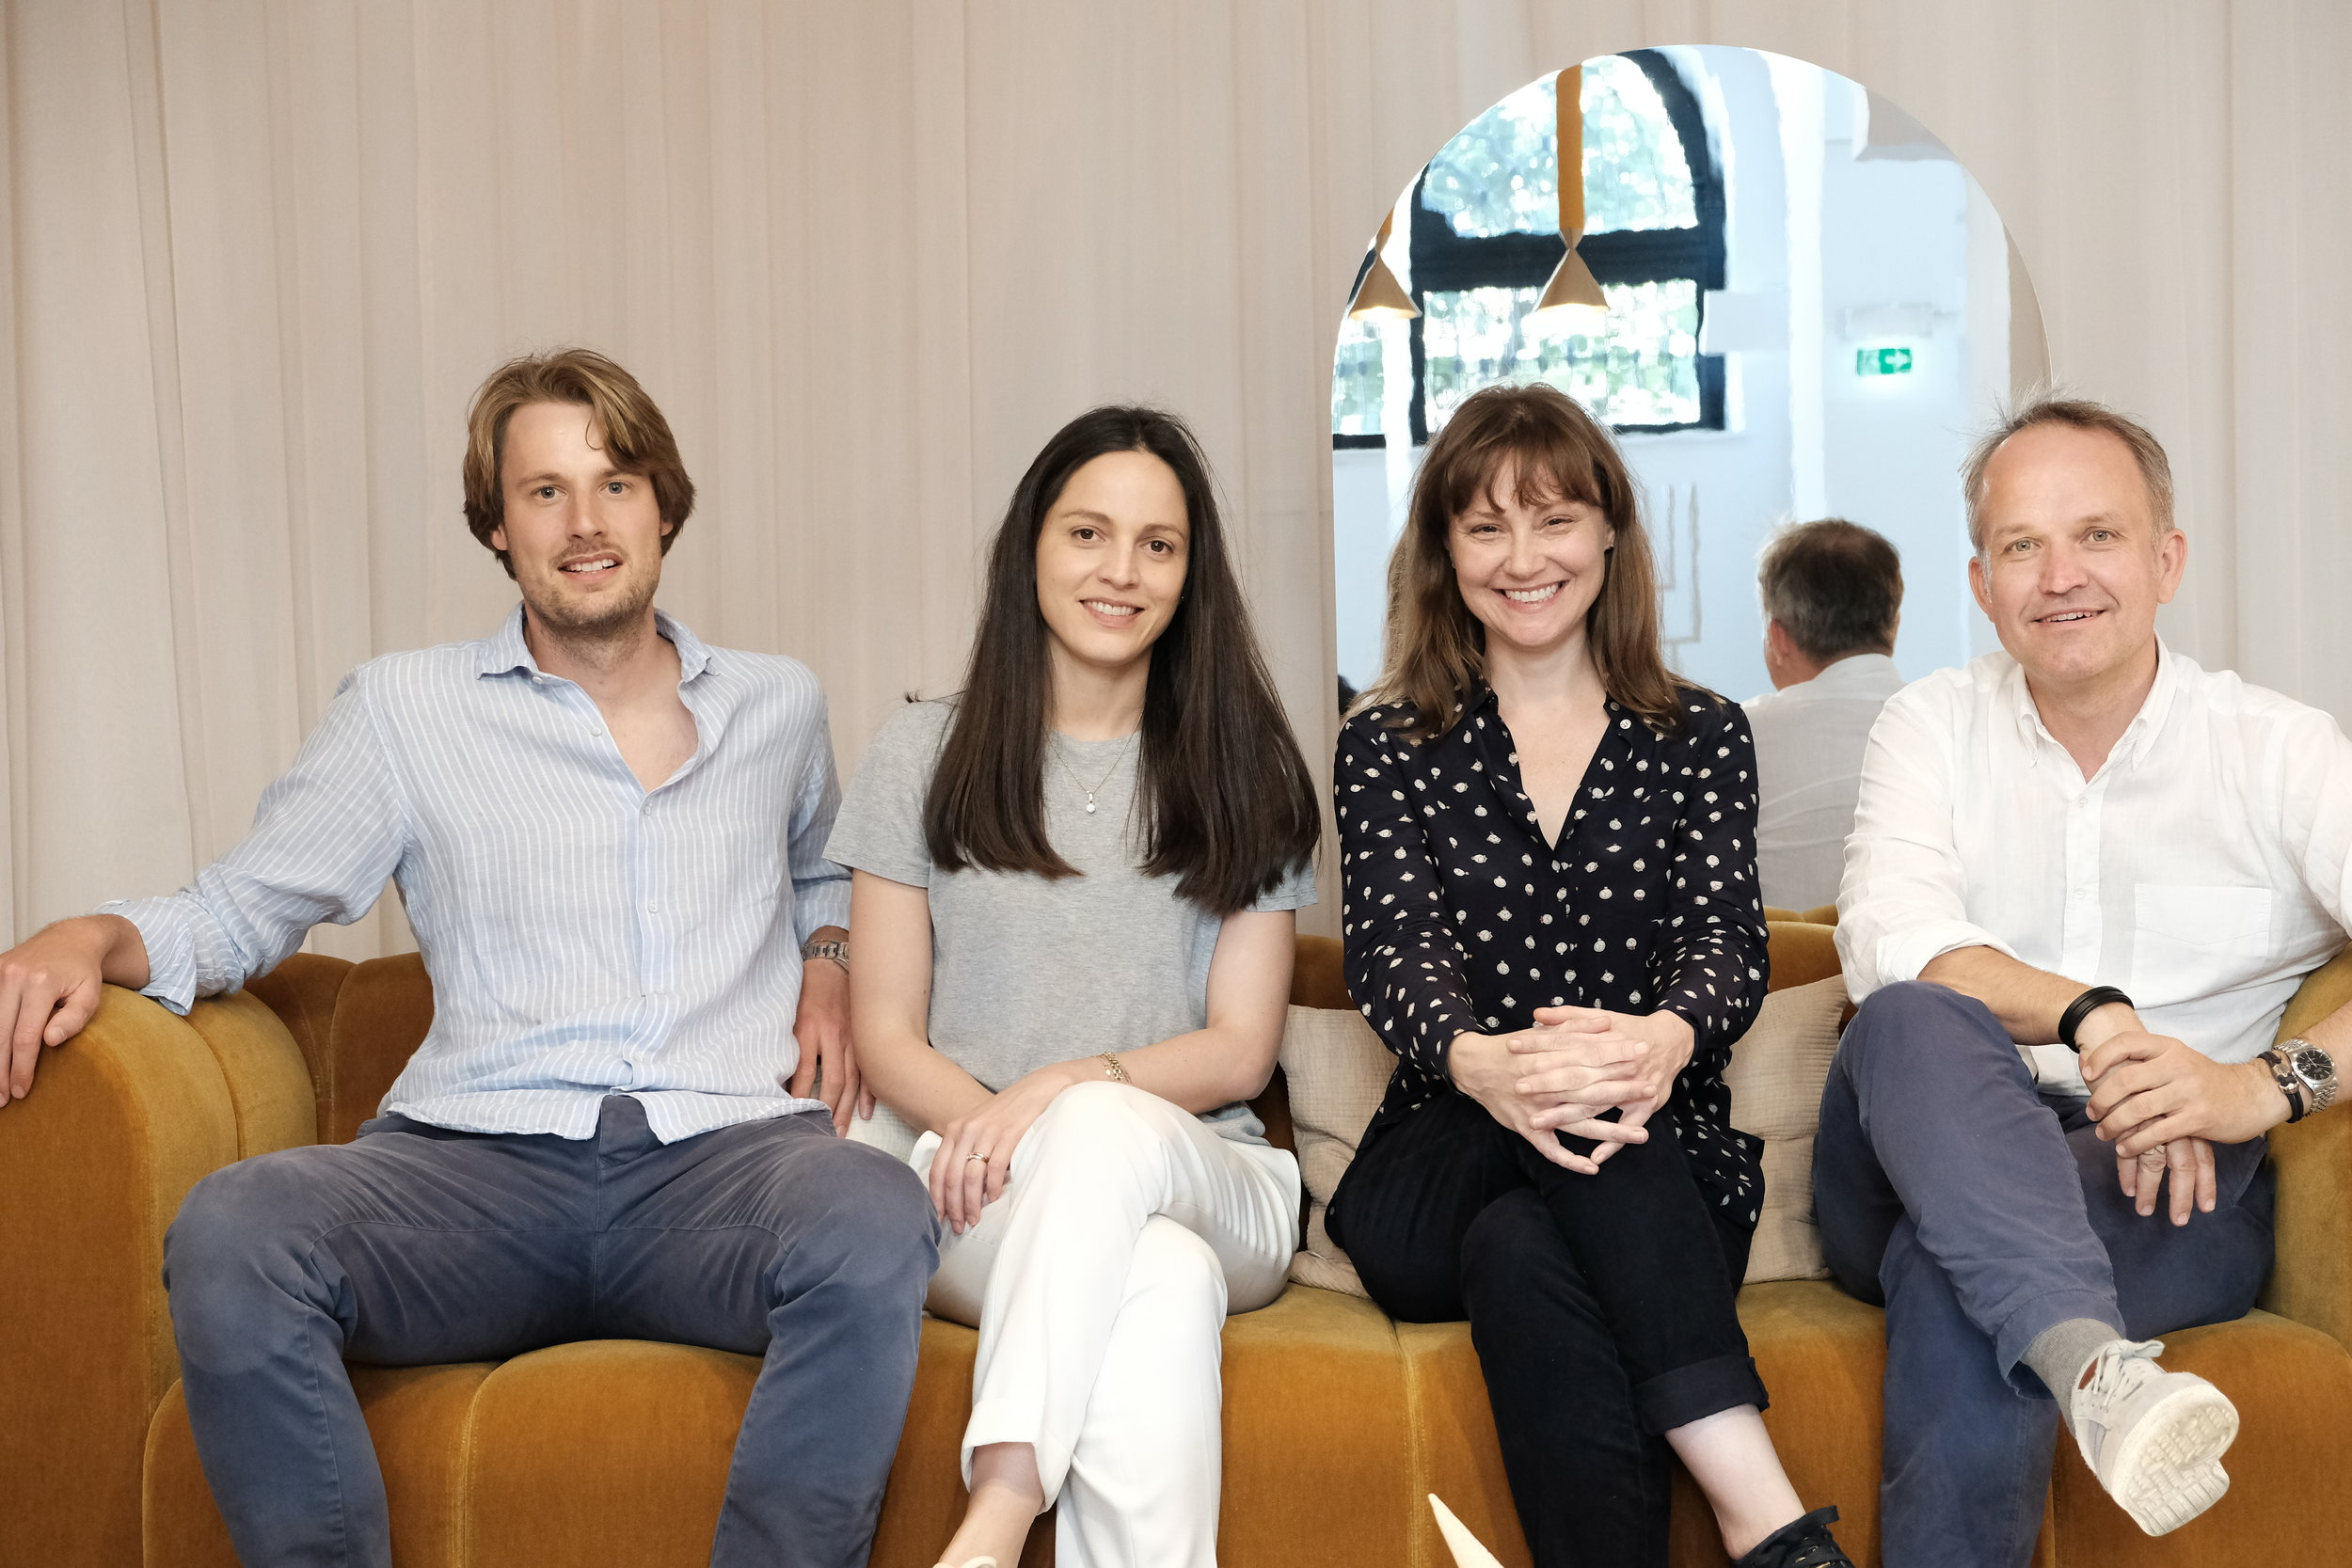 The Pamono Team: Christian Ahrendt, Letizia Luperini, Wava Carpenter and Oliver Weyergraf / Photo: Manuel Coen.